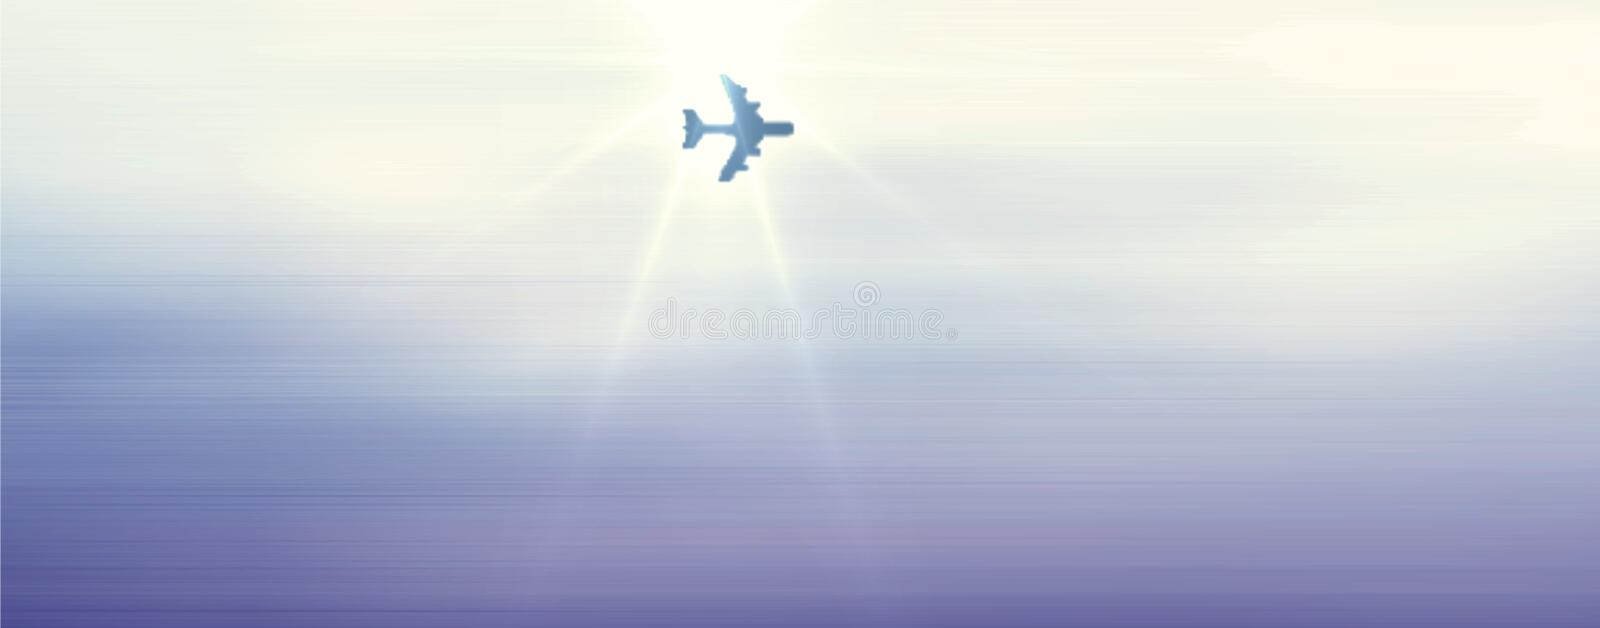 Airplane passing under sunlight in the beautiful blue sky with cloudy effect computer generated image and wallpaper design vector illustration